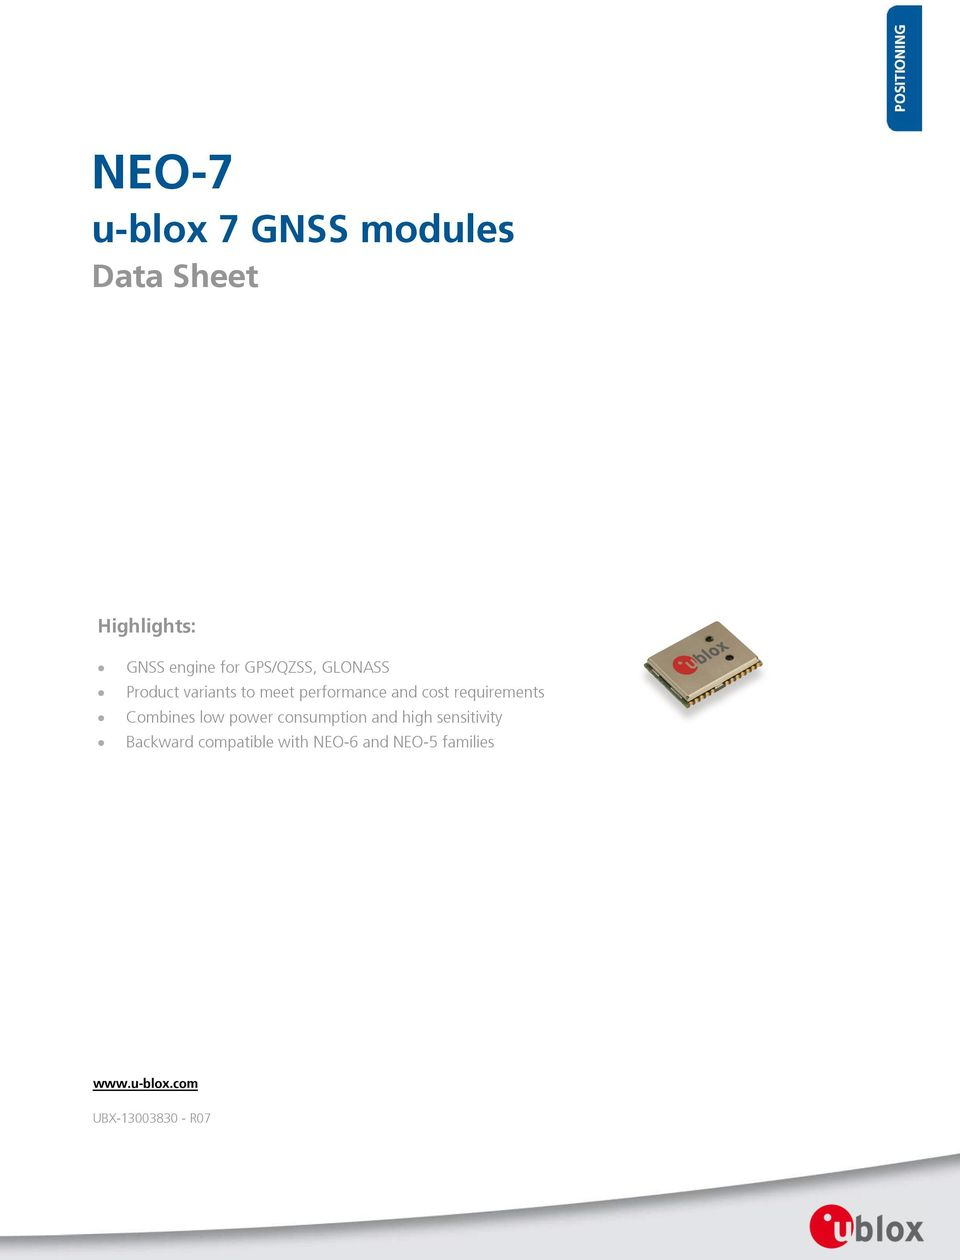 NEO-7  u-blox 7 GNSS modules  Data Sheet  Highlights: - PDF